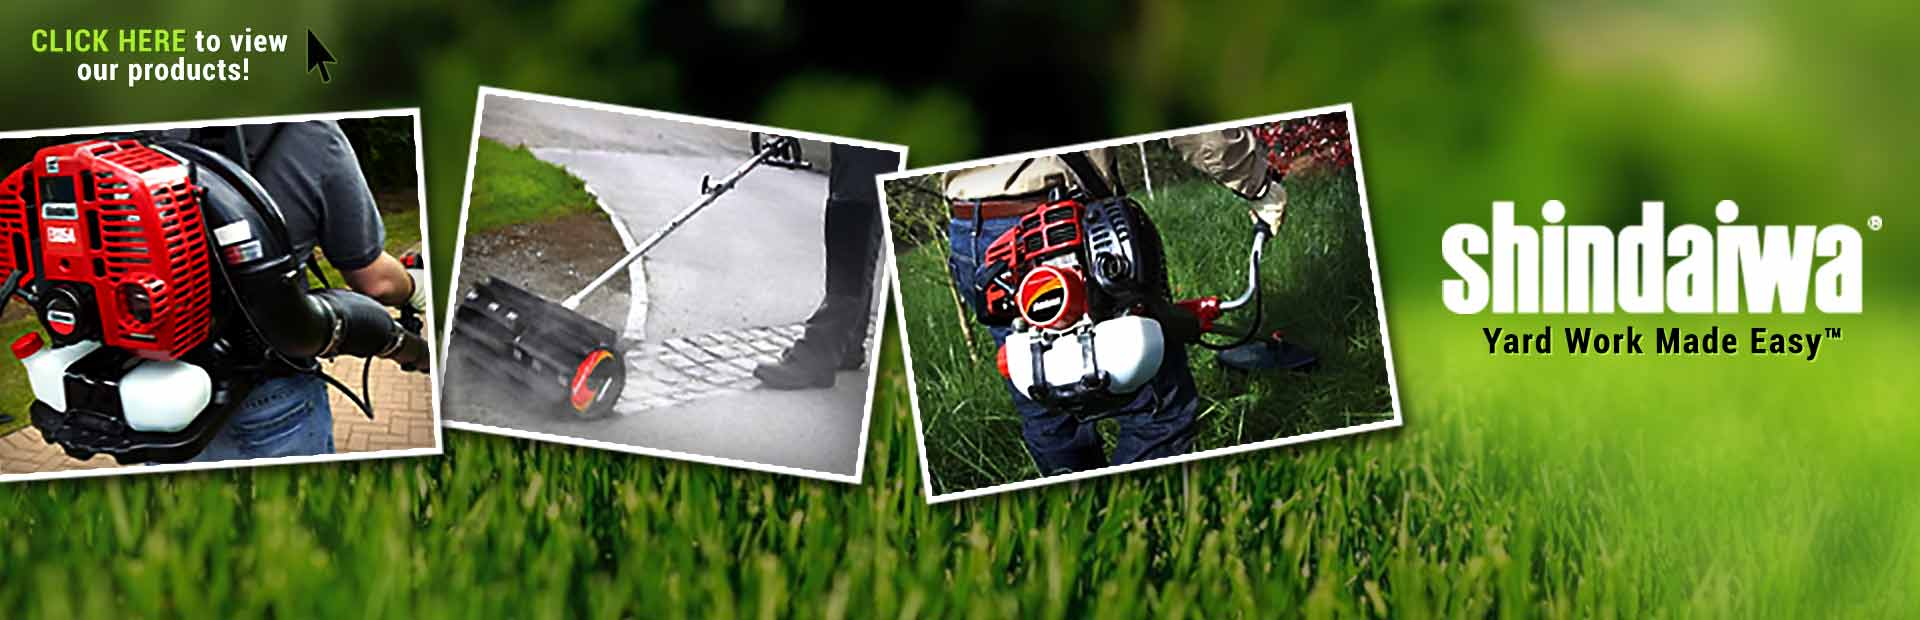 Bishops Small Engine Repair Inc Richmond Ky 859 624 1893 Lawn Mower Diagram View Our Shindaiwa Products